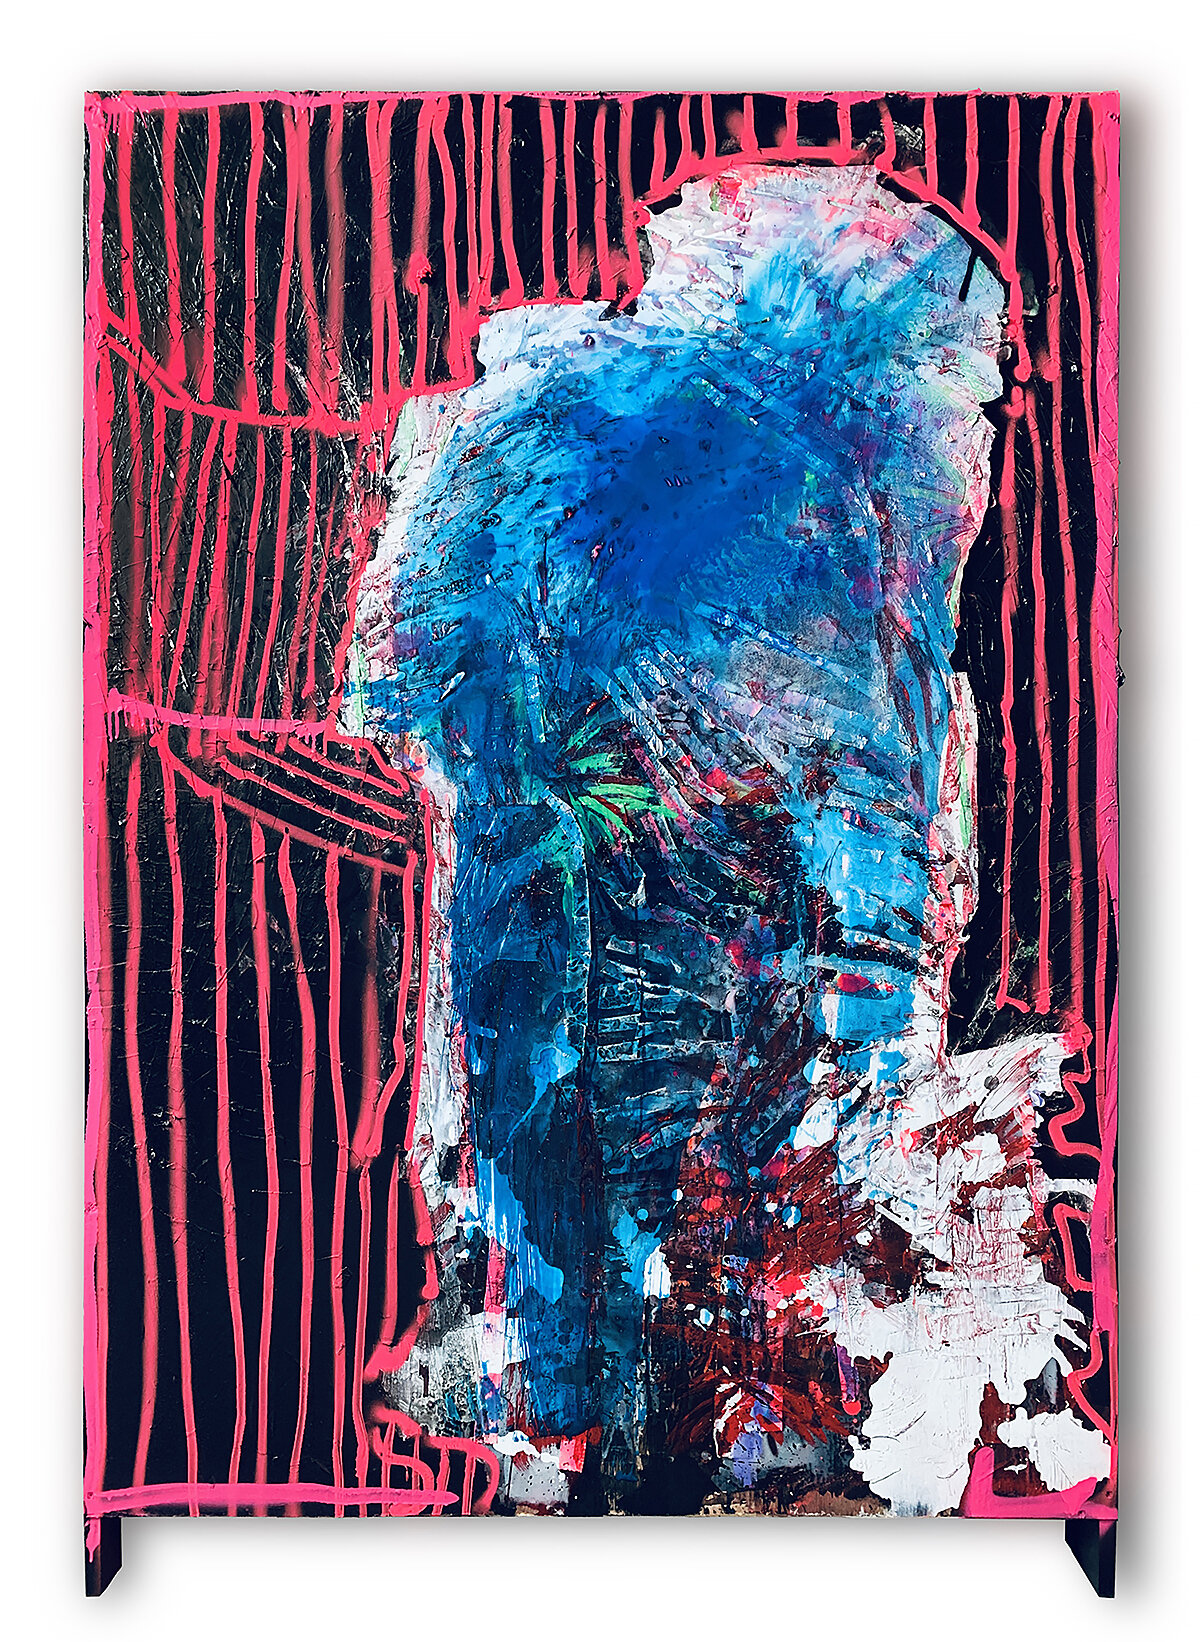 Blue Man       acrylic & collage on wood -1.21 X 1.82 meters- 2019